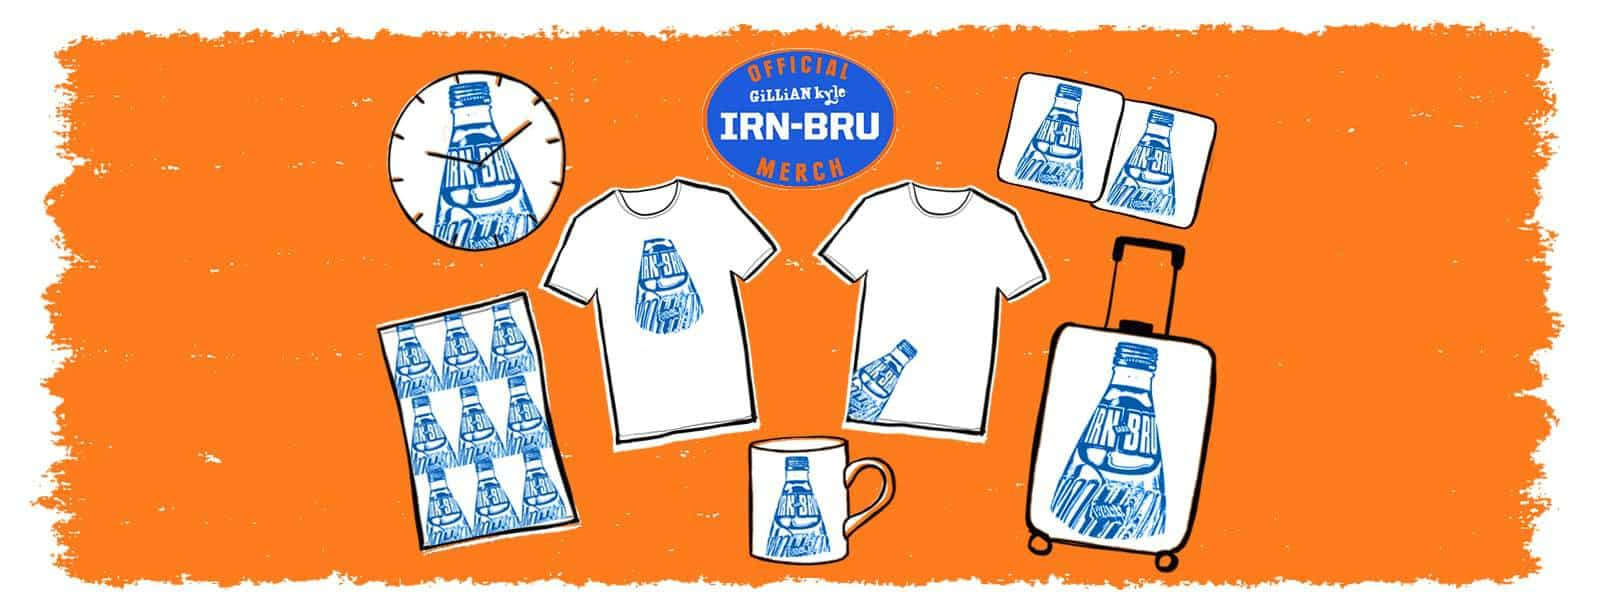 Official Irn Bru gifts from Gillian Kyle